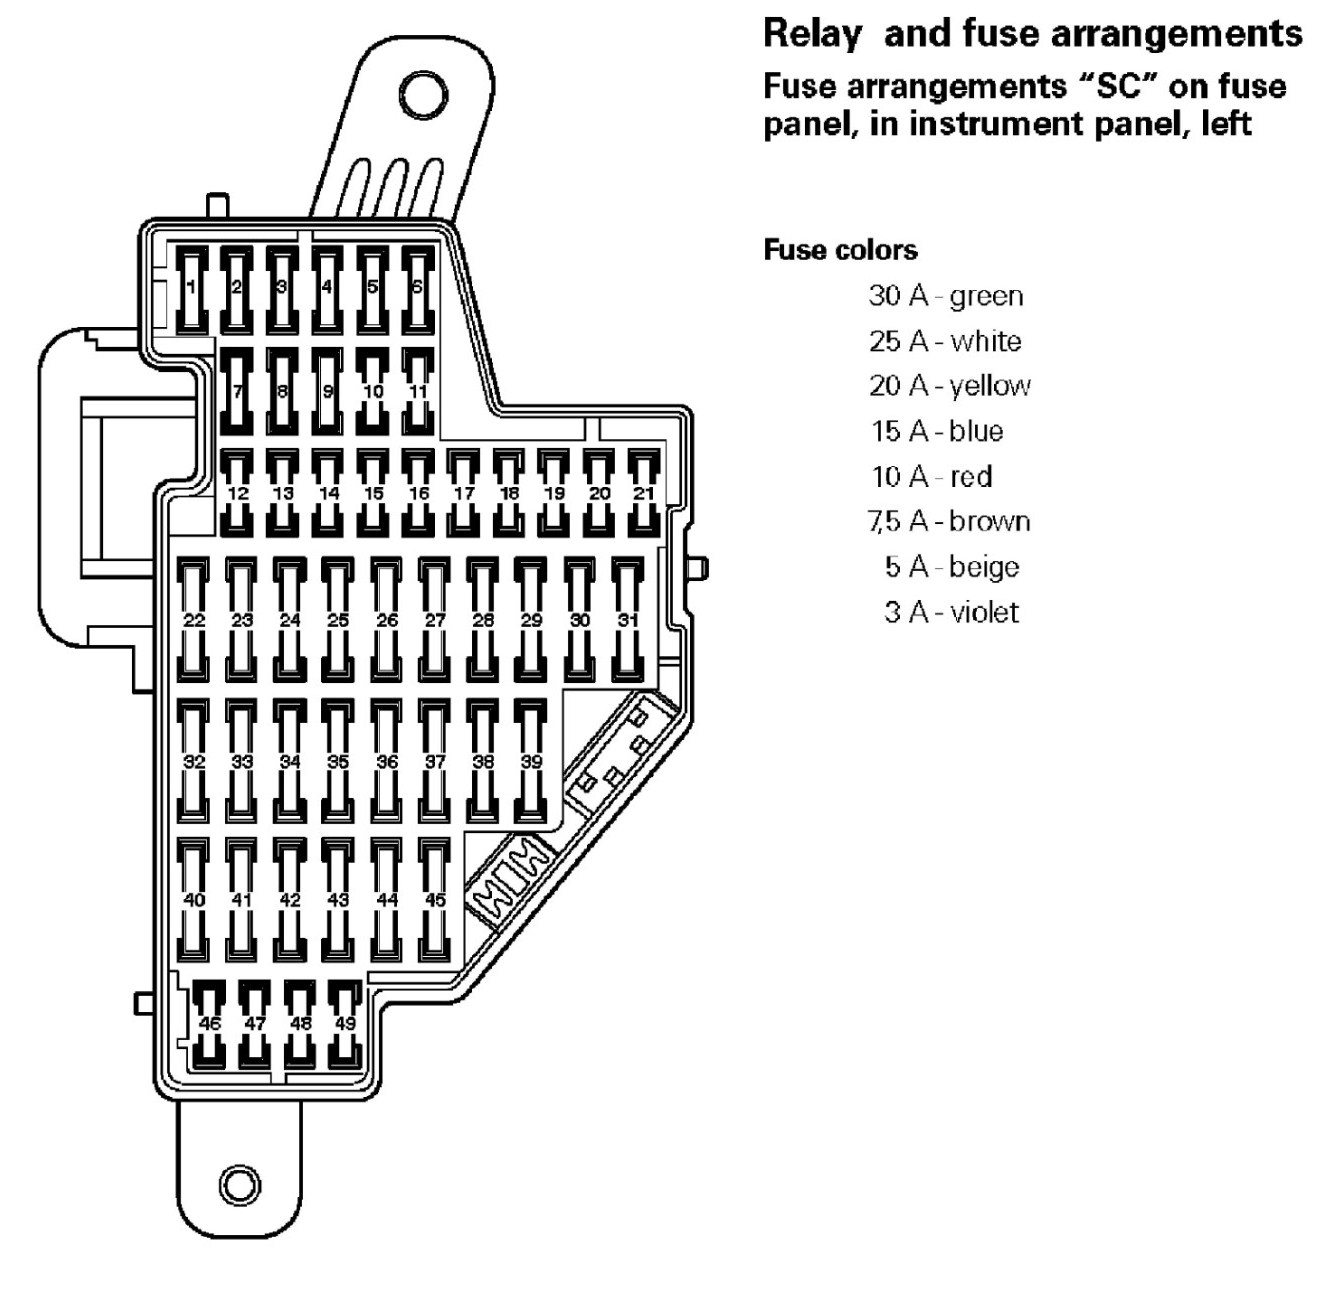 hight resolution of vw jetta 2006 fuse box diagram wiring diagrams 2006 jetta tdi engine fuse box diagram 2006 jetta tdi fuse box diagram